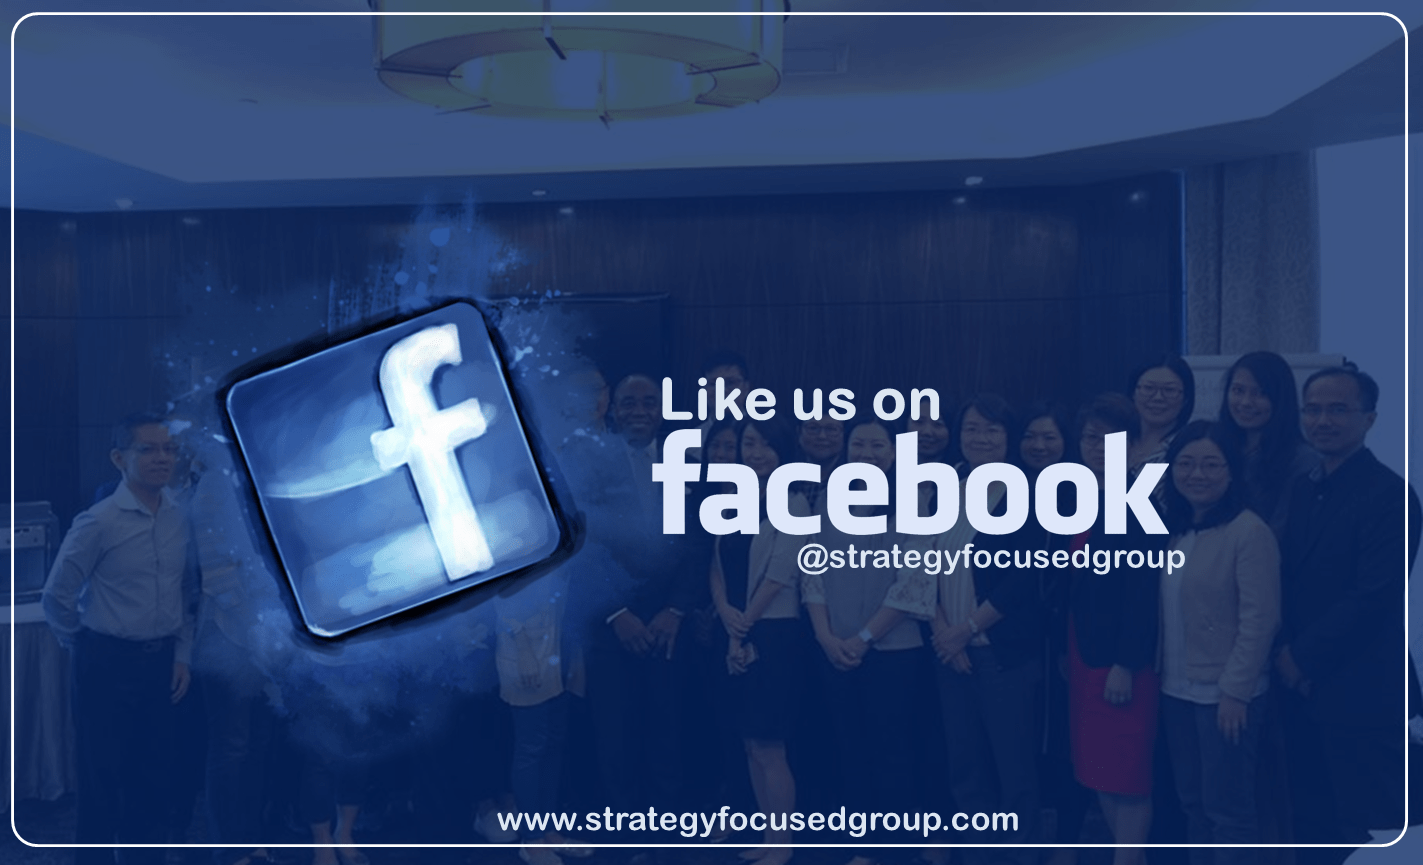 Is Your Company Making a Positive Contribution to Society?, SFG, Stategy focused group, Innovation, Ideas, Facebook